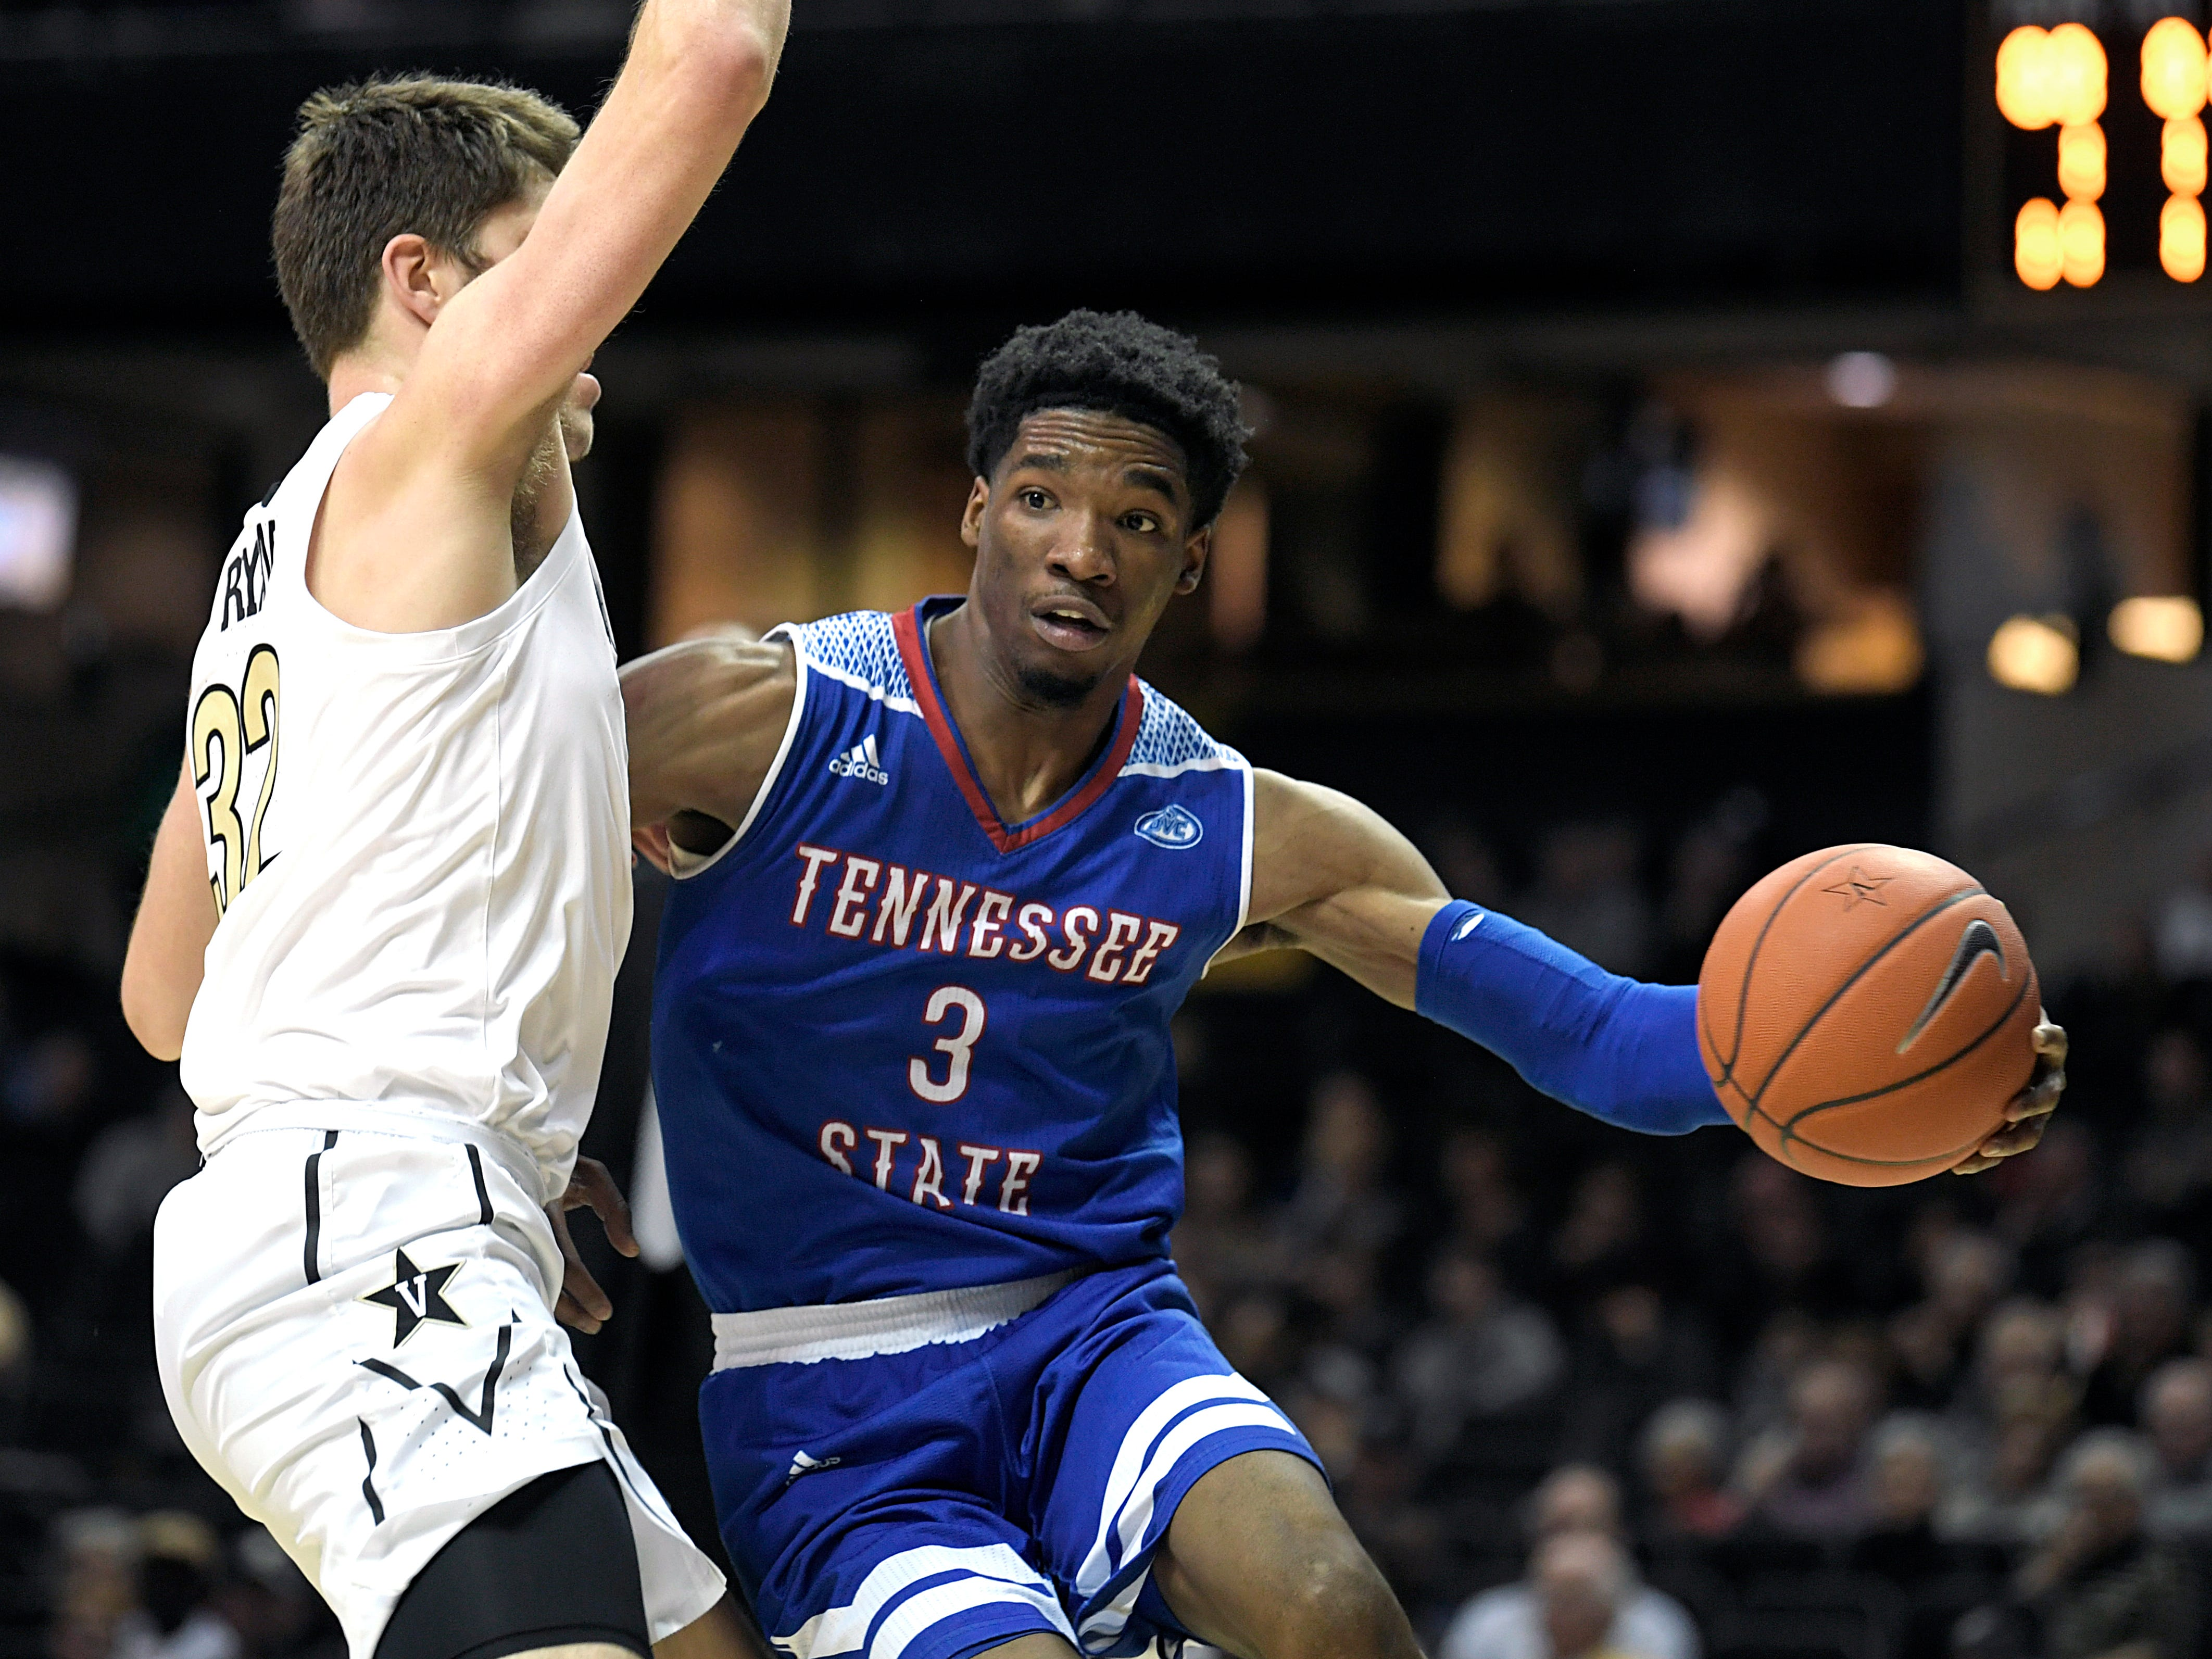 Tennessee State guard Donte Fitzpatrick-Dorsey (3) drives to the basket against Vanderbilt forward Matt Ryan (32) during a game at Memorial Gym in Nashville on Saturday, Dec. 29, 2018.